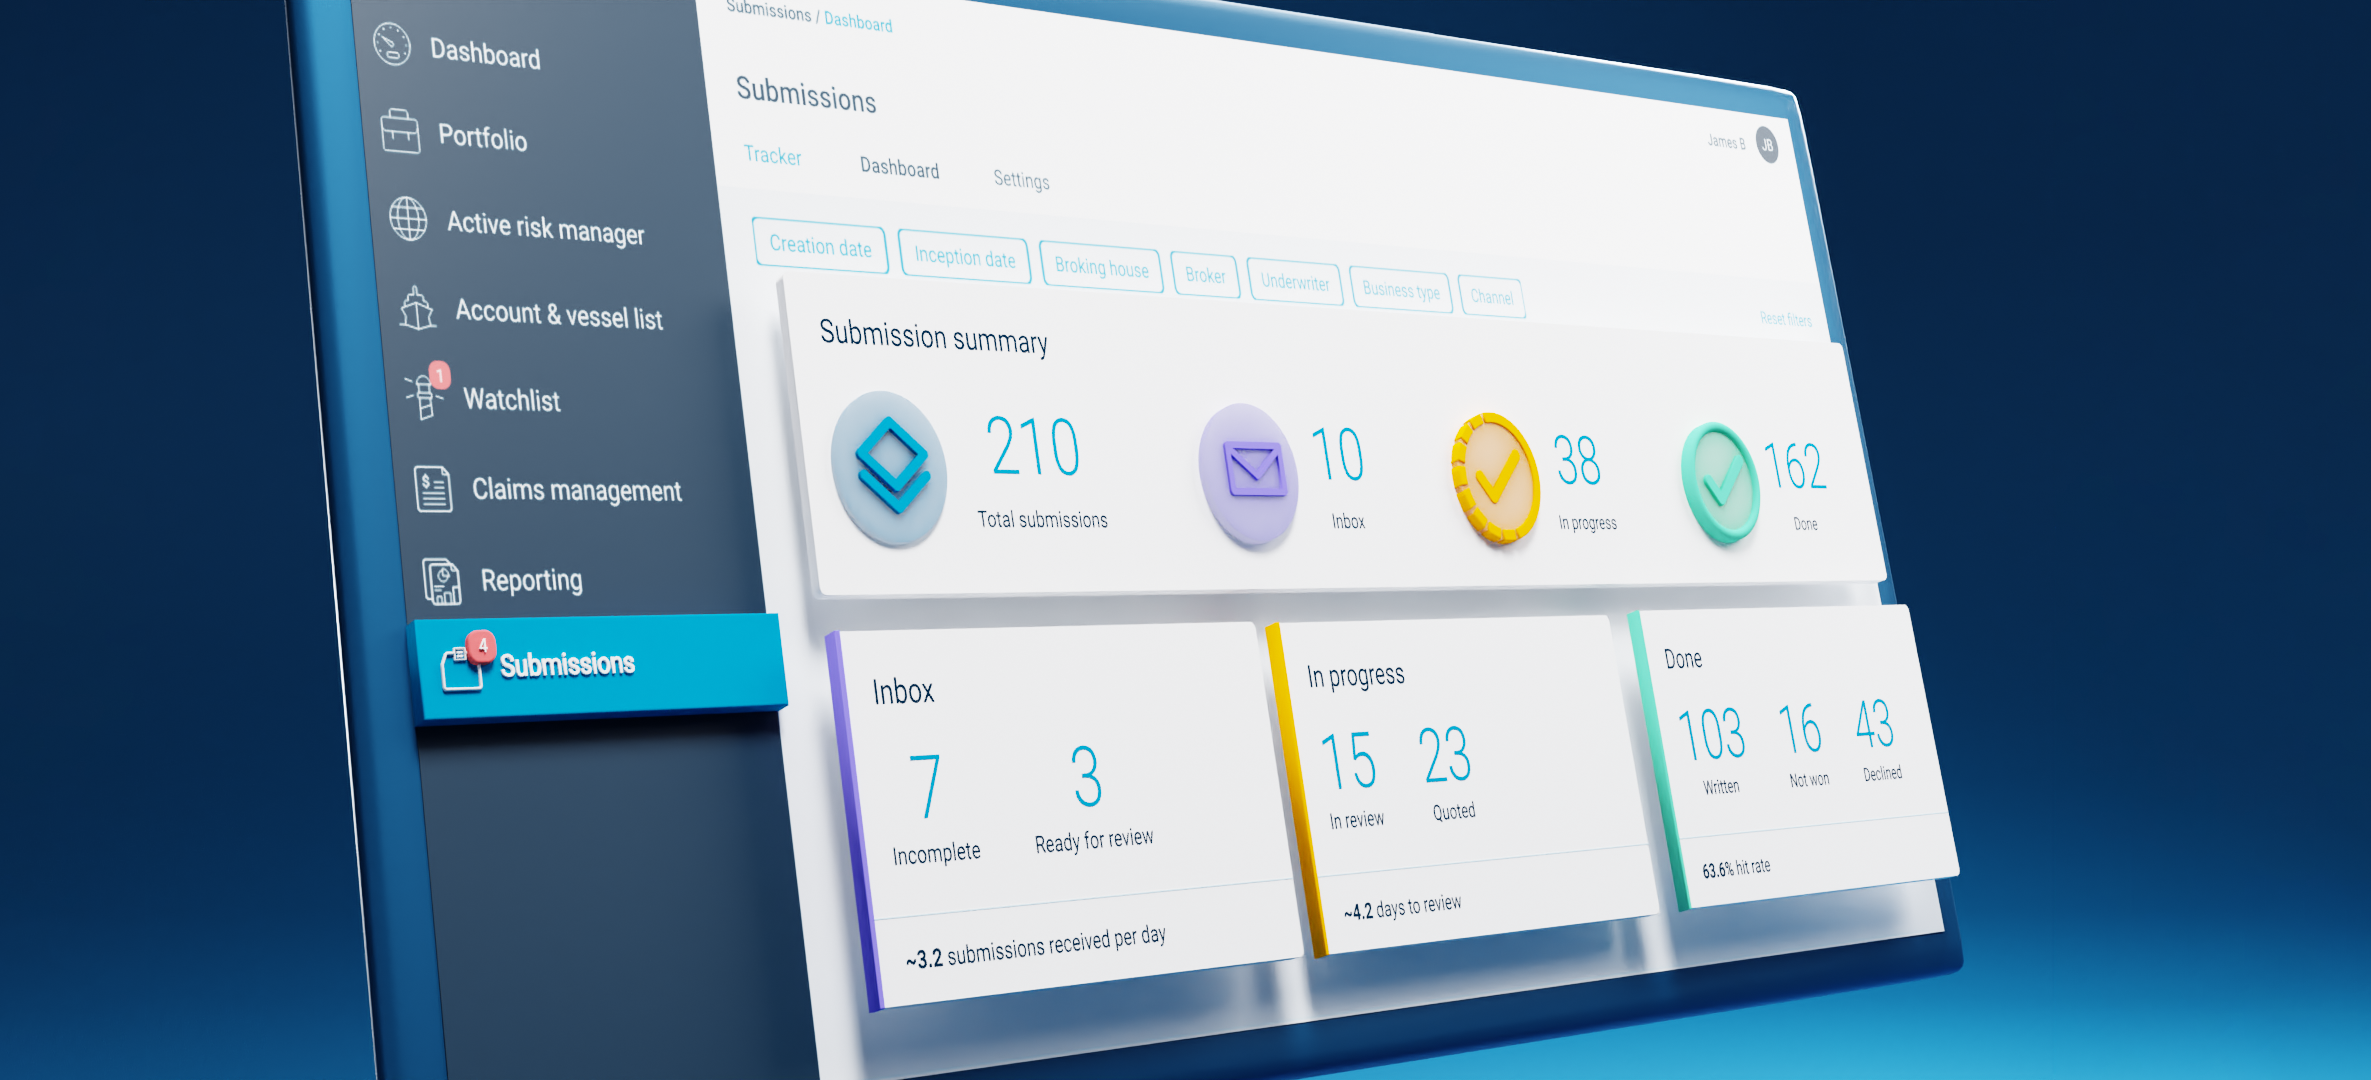 Submissions-dashboard